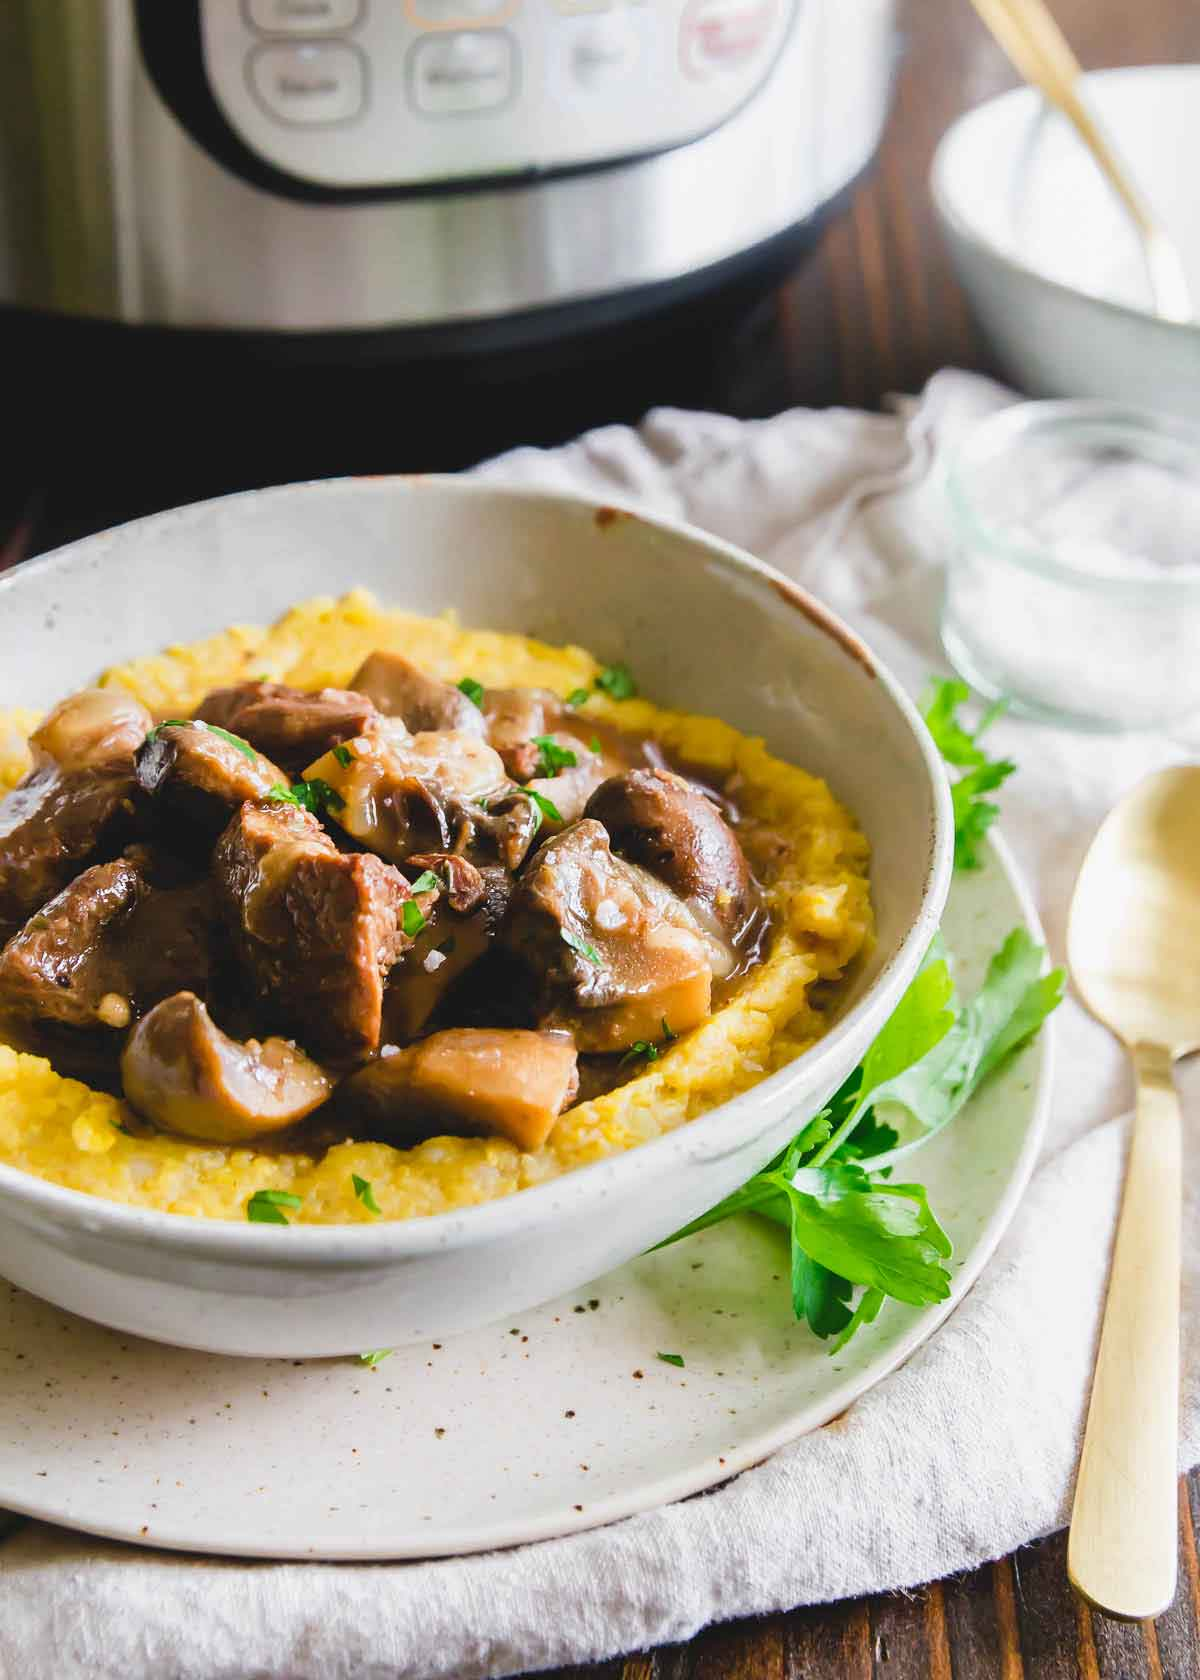 This beef and mushroom stew made in the Instant Pot is a hearty, comforting, stick to your ribs kind of meal that's perfect for winter.